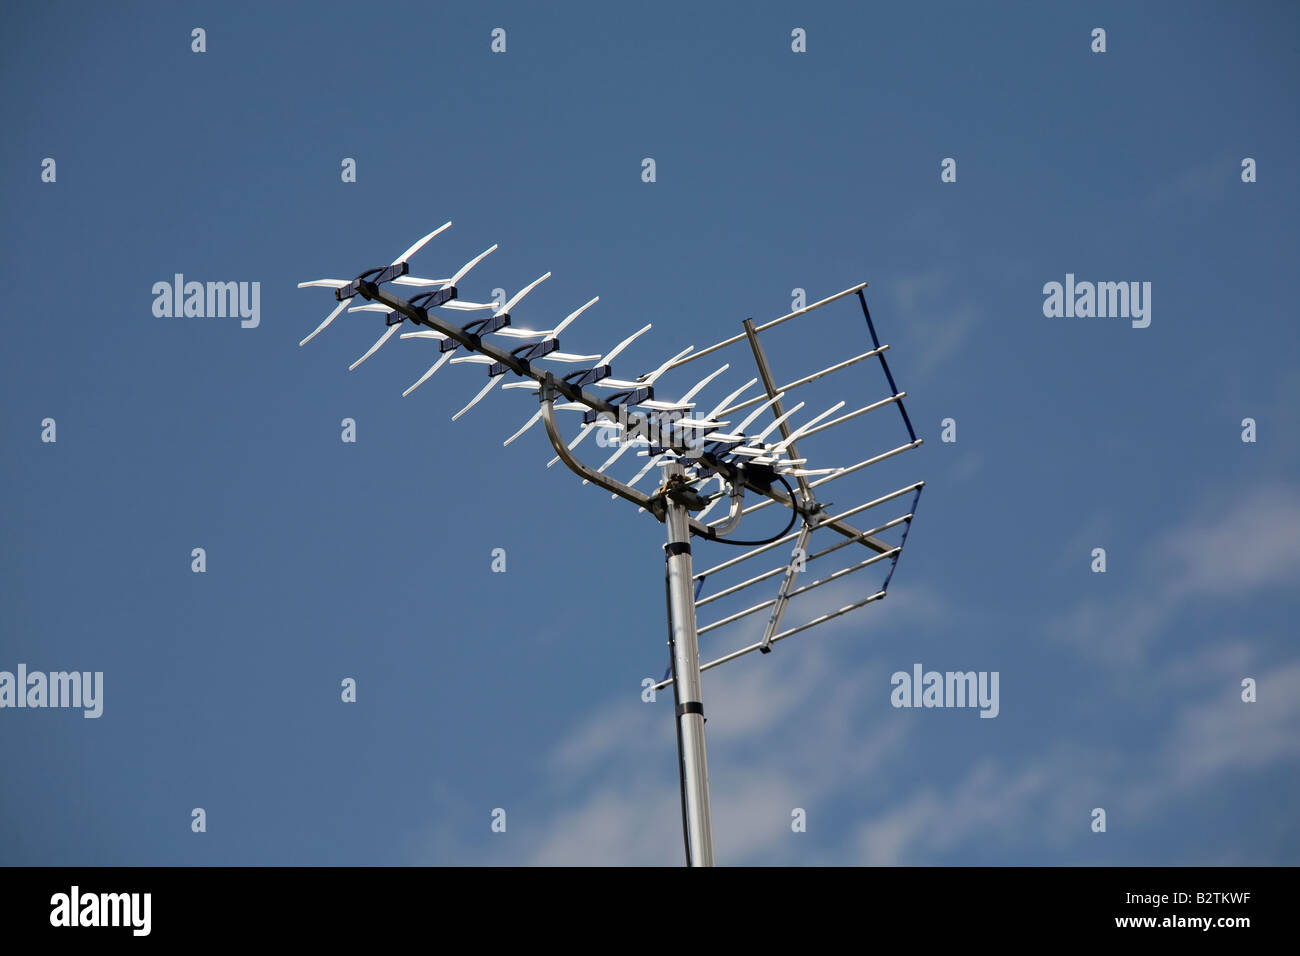 An analogue signal TV television aerial antenna soon to be discontinued in the UK - Stock Image